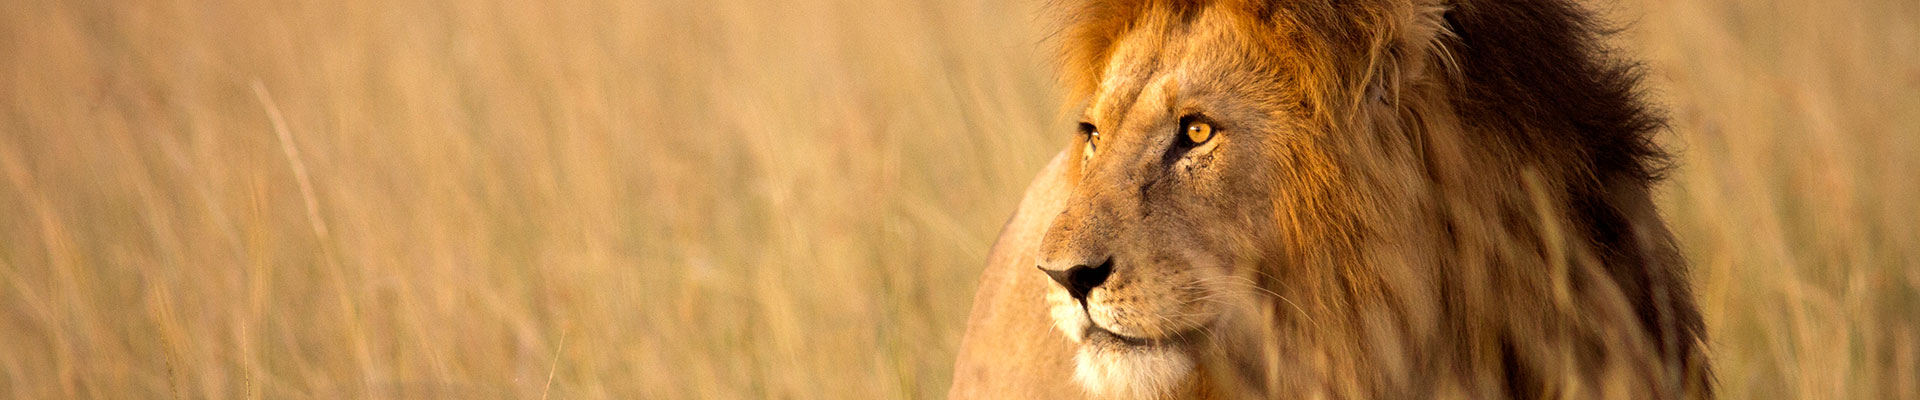 Fantasy RV Tours: 33 Day South Africa RV Safari (33OSAF-021521)